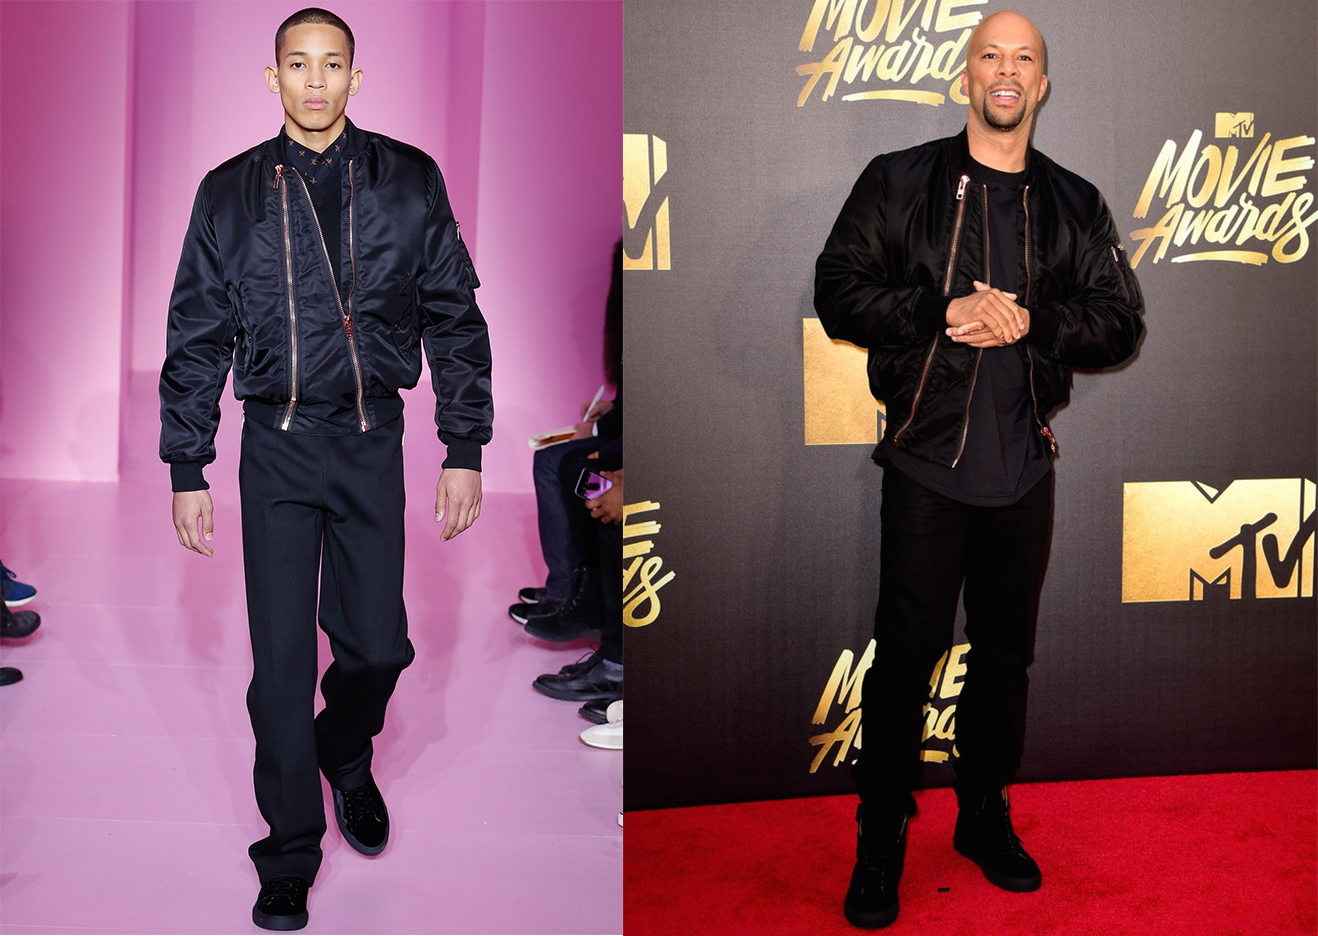 Spotted: Common In Givenchy AW16 at the MTV Movie Awards